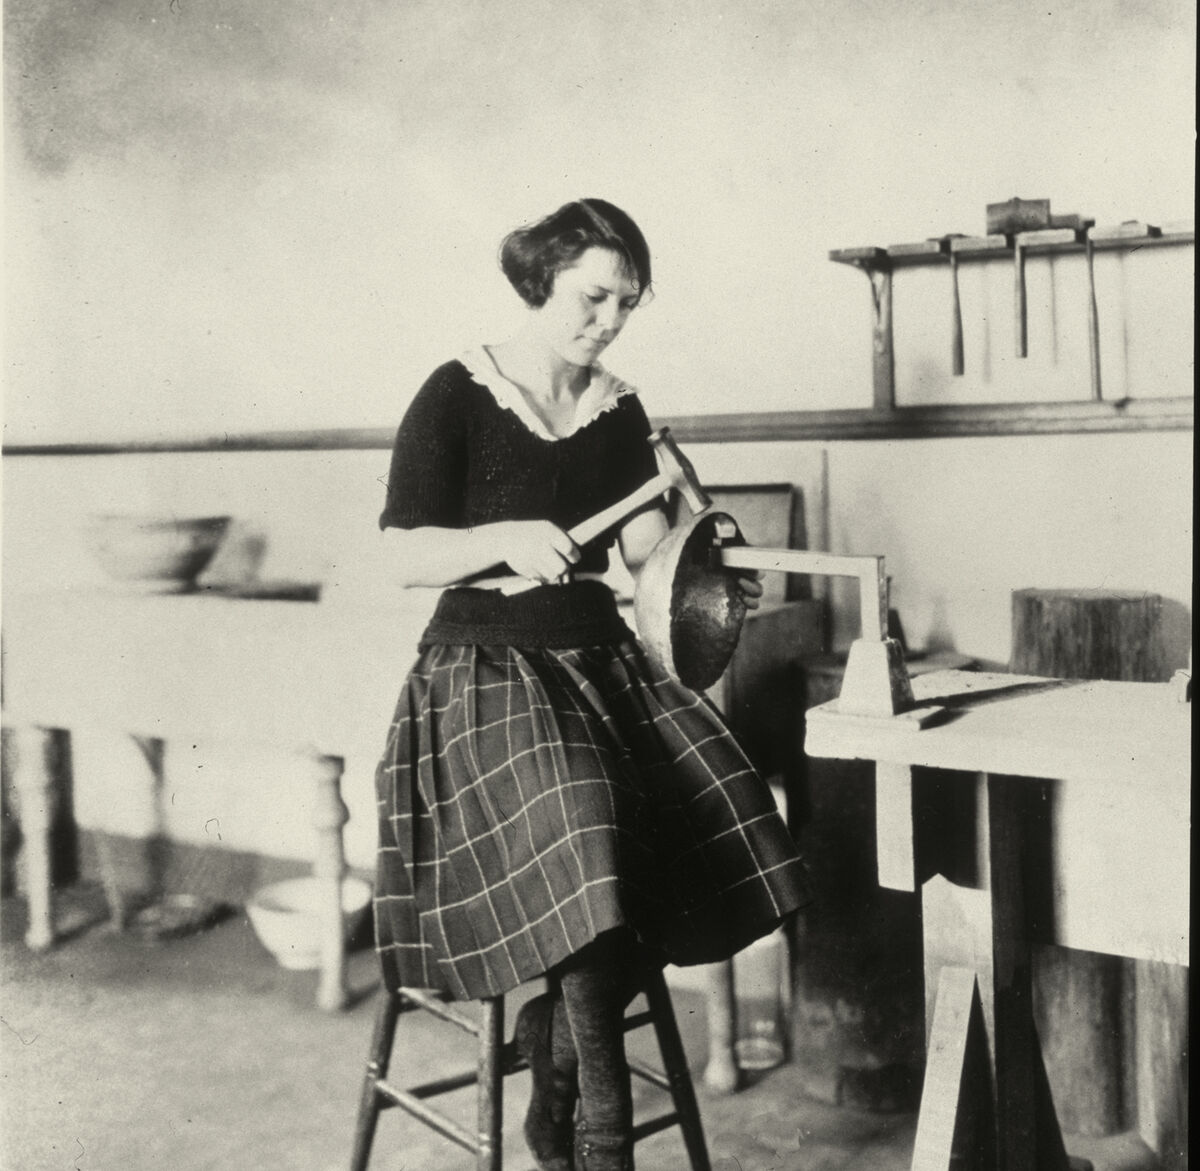 Newcomb College Student forming a metal bowl, c. 1920. Courtesy of the Newcomb Archives - Photo Archives Collection.